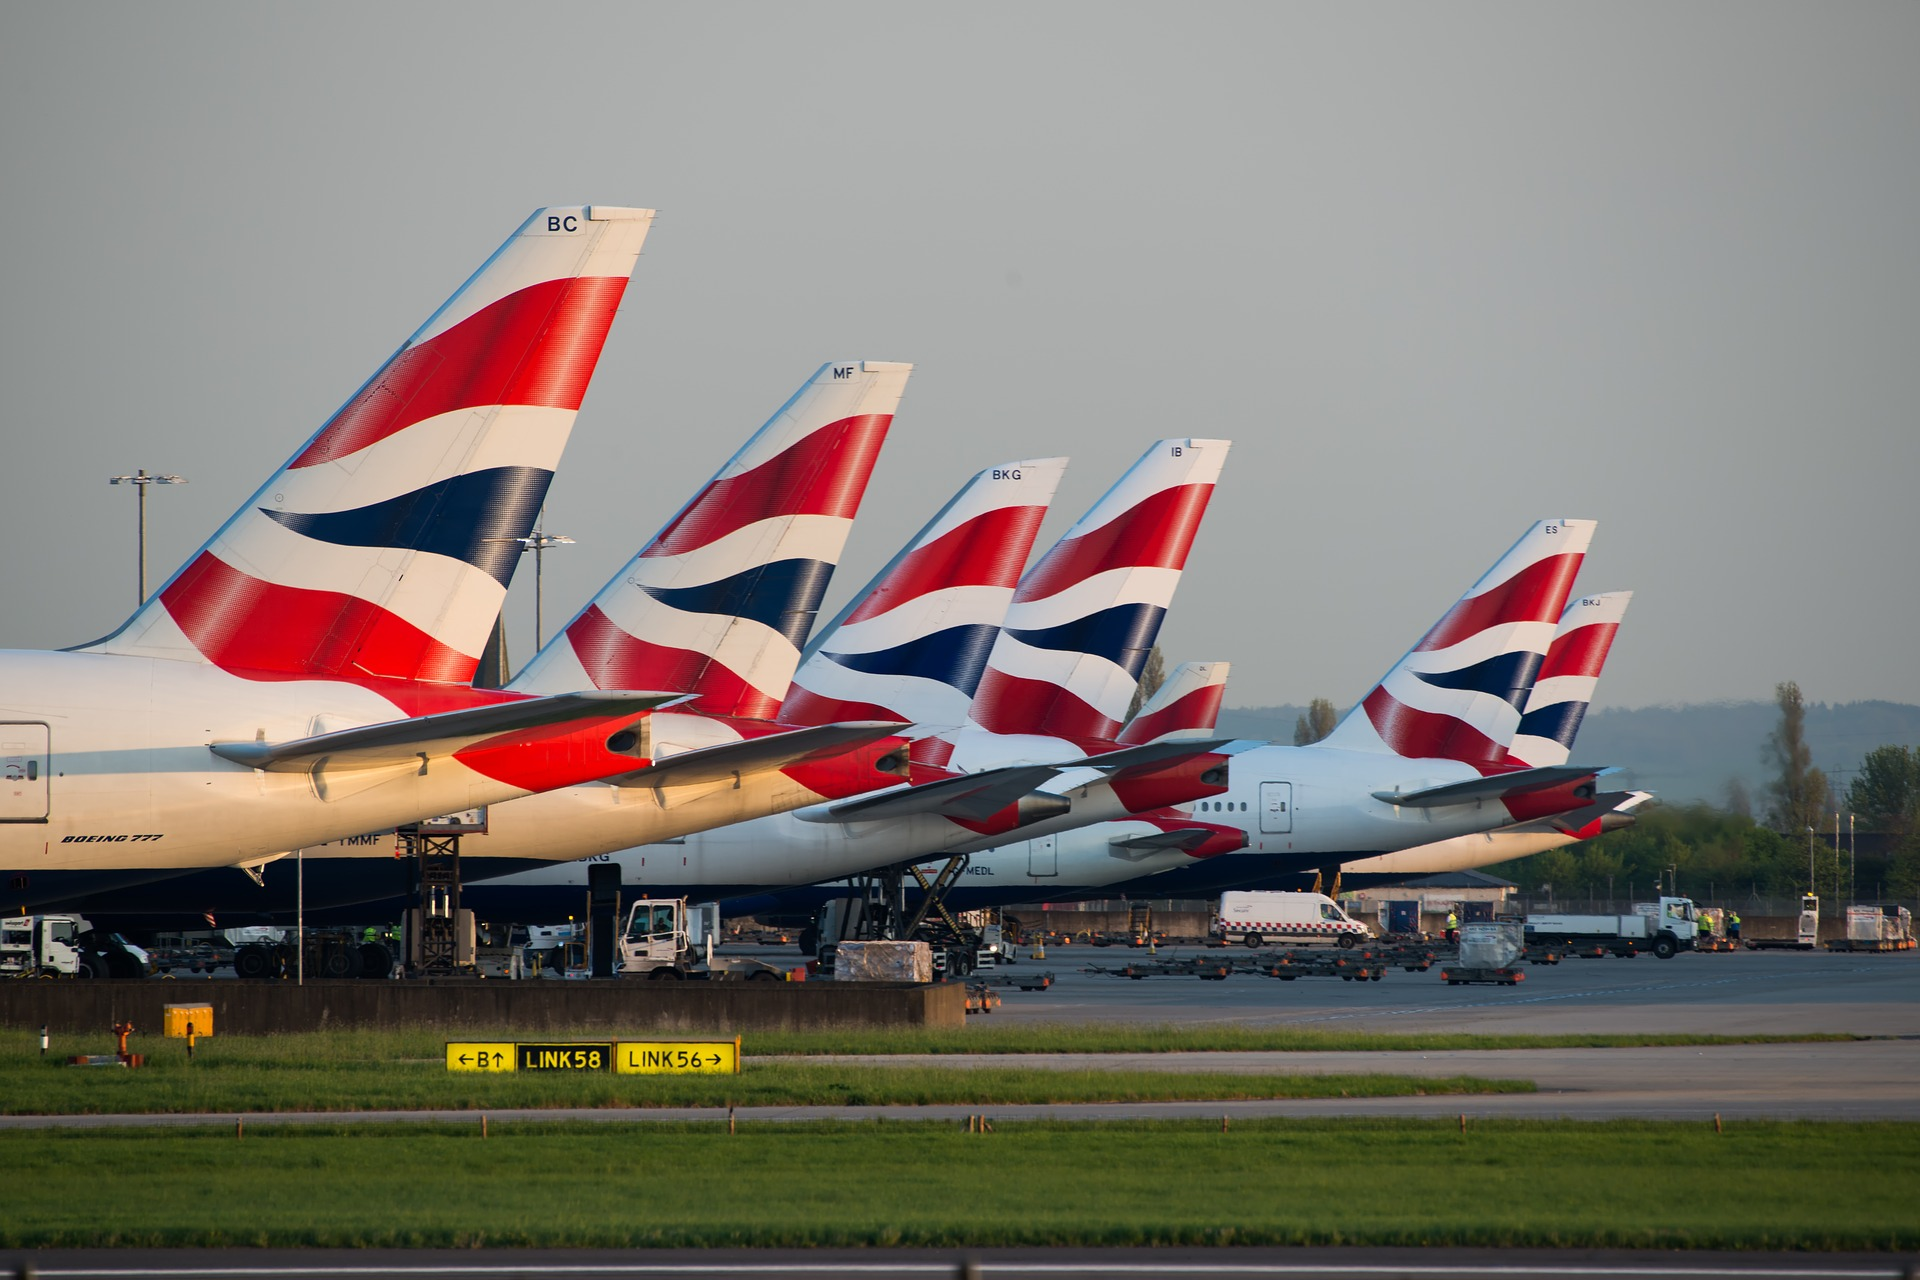 British Airways' errant emails confuse holidaymakers by saying their flight was cancelled when it wasn't